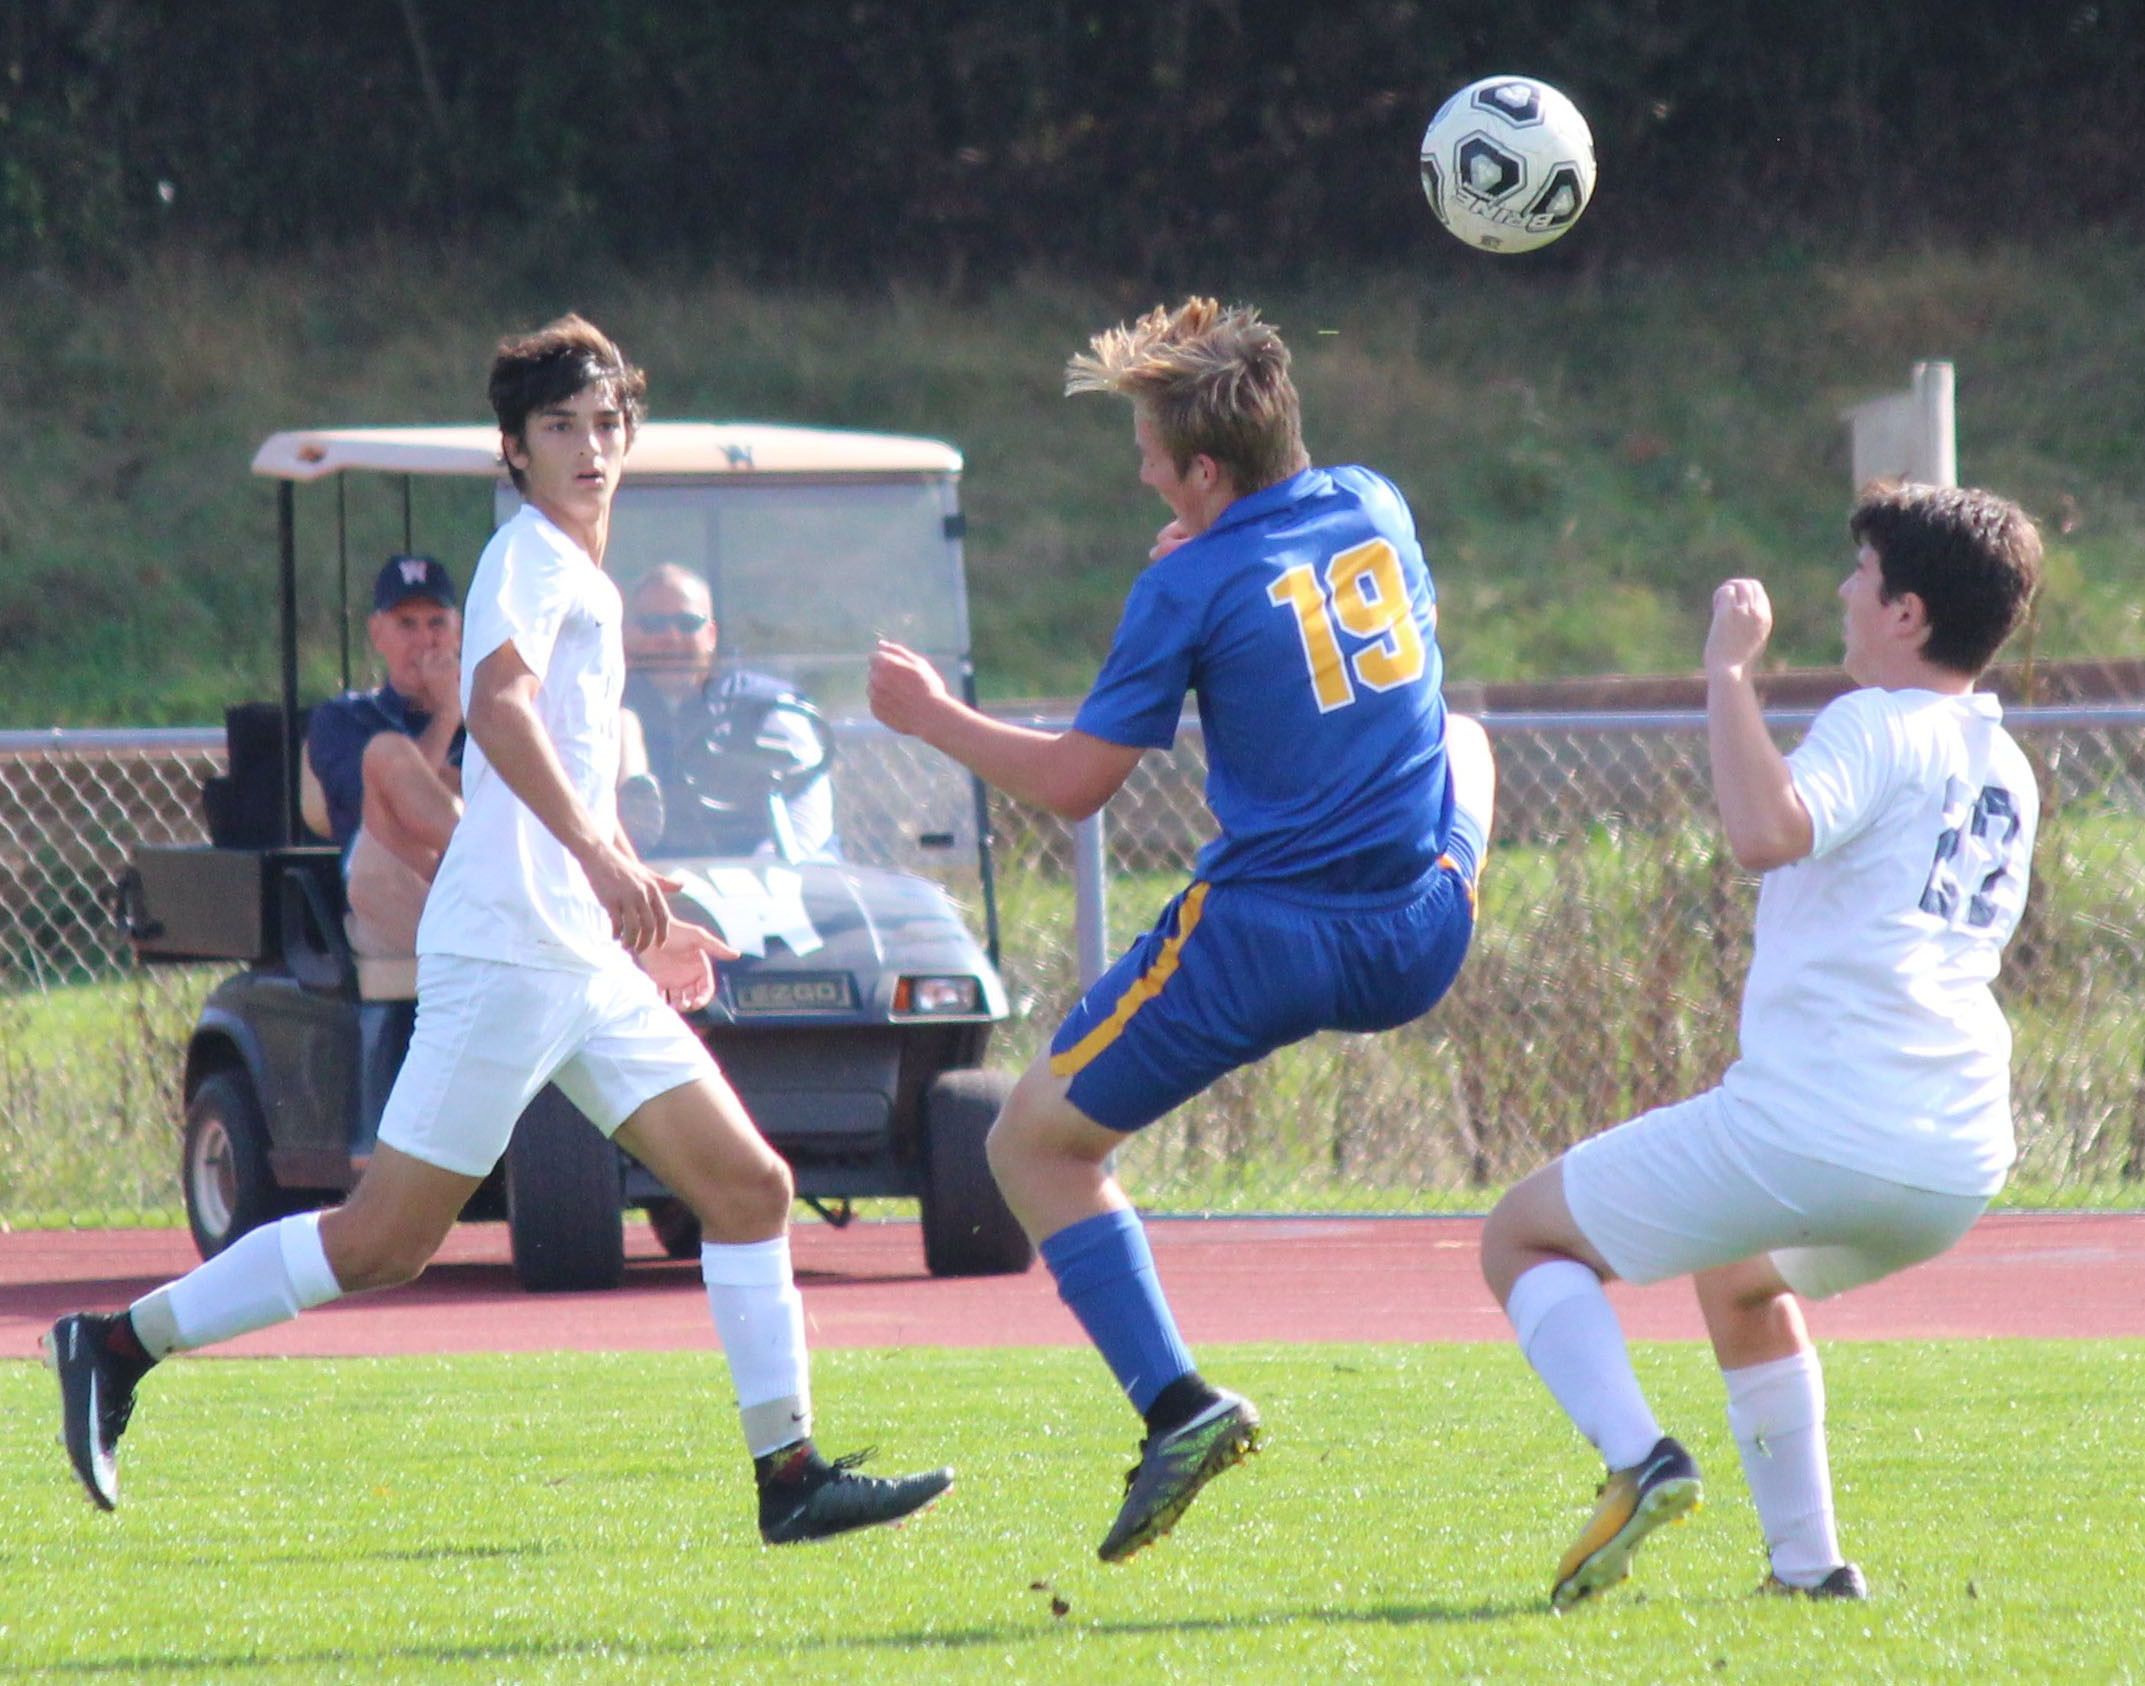 Joey Spear battles with two Wyomissing players.